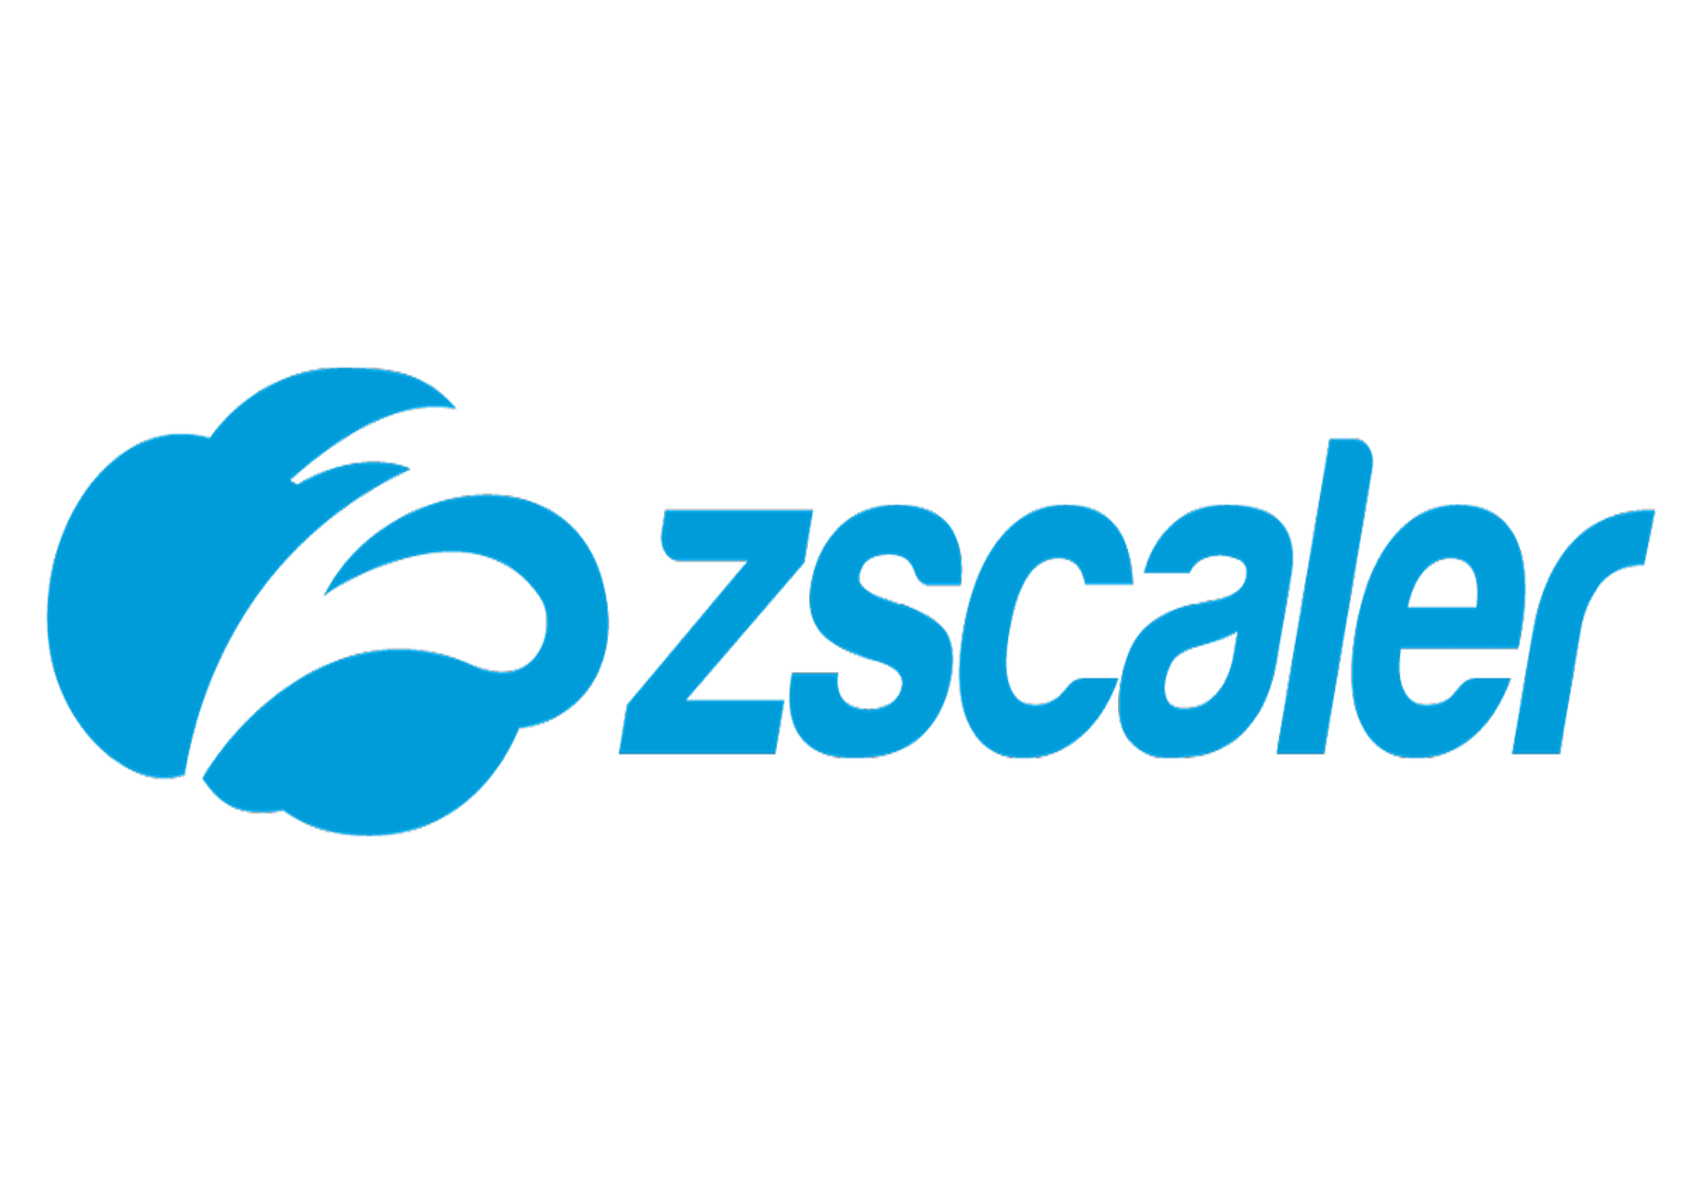 Mobile Security Zscaler